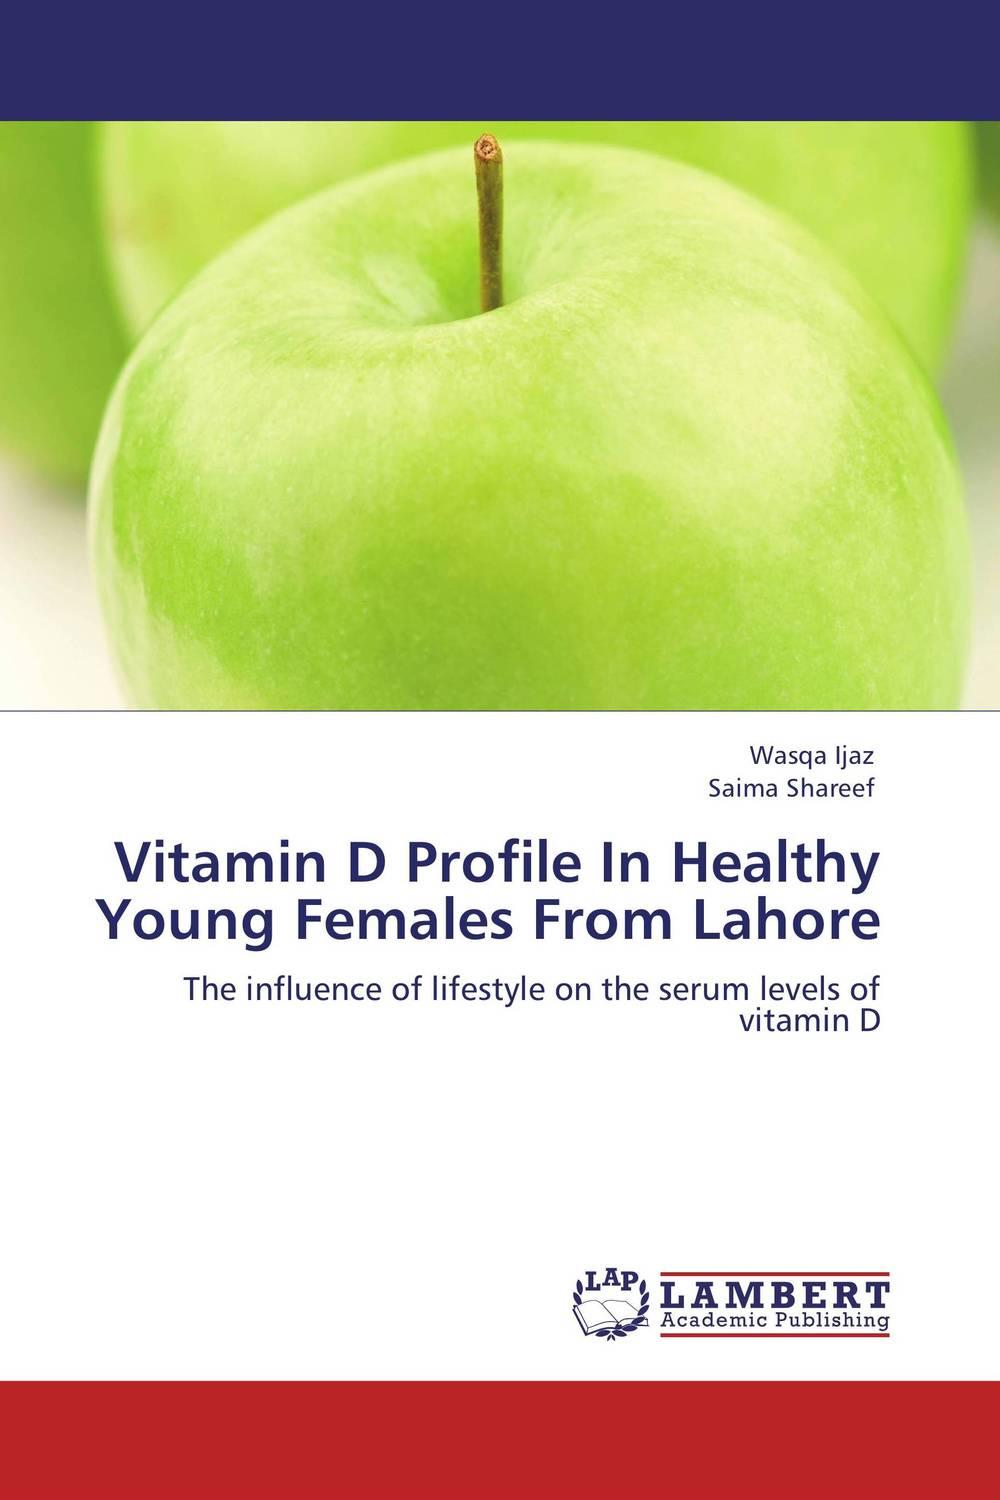 Vitamin D Profile In Healthy Young Females From Lahore incest and interpersonal relationships of young adult females